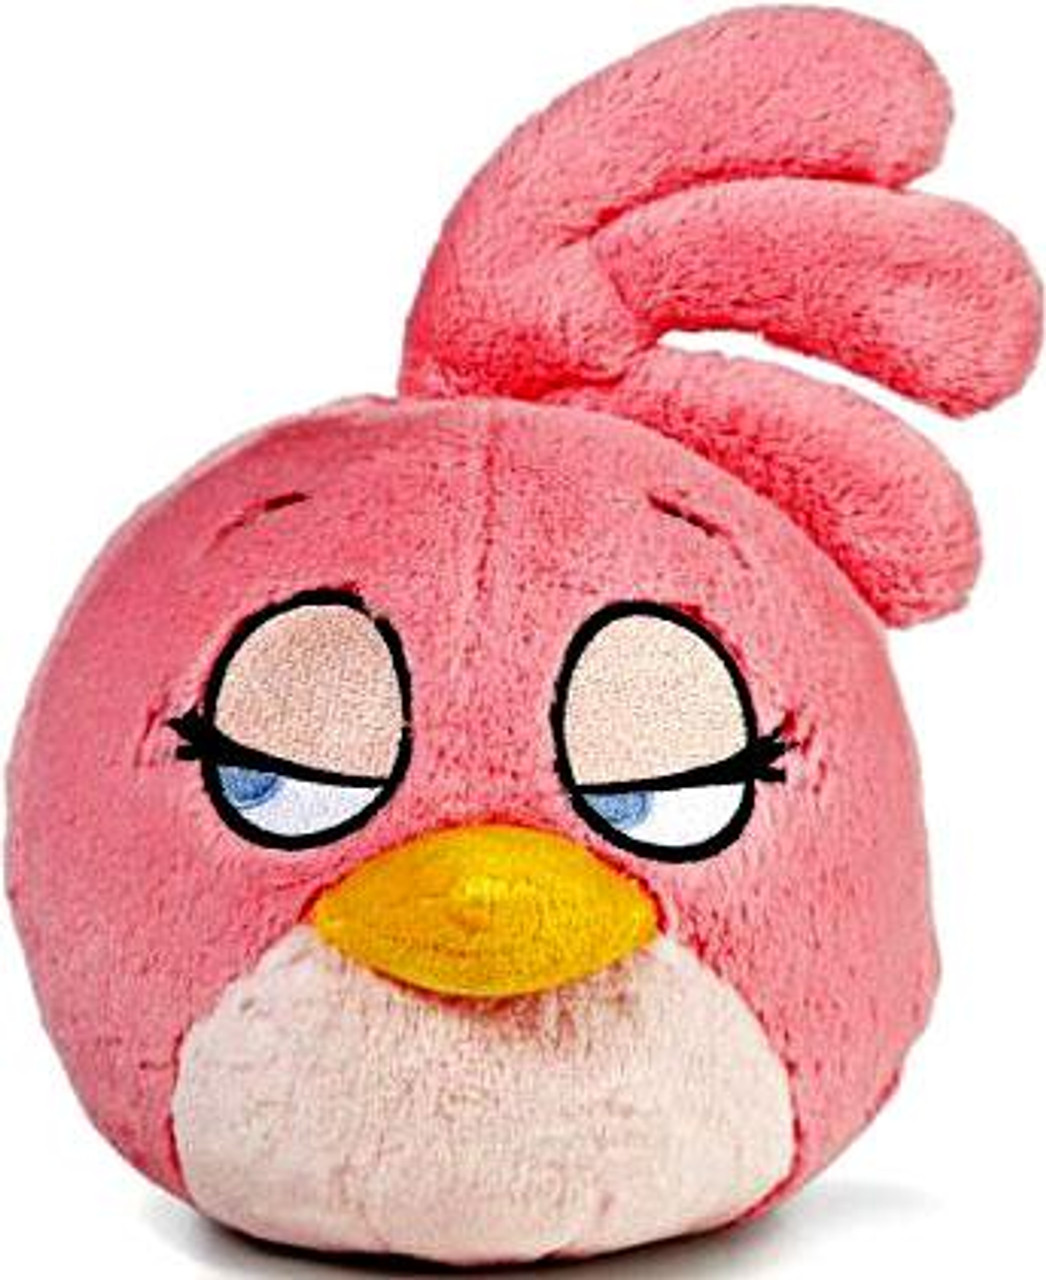 Angry Birds Pink Bird 16-Inch Plush [With Sound]